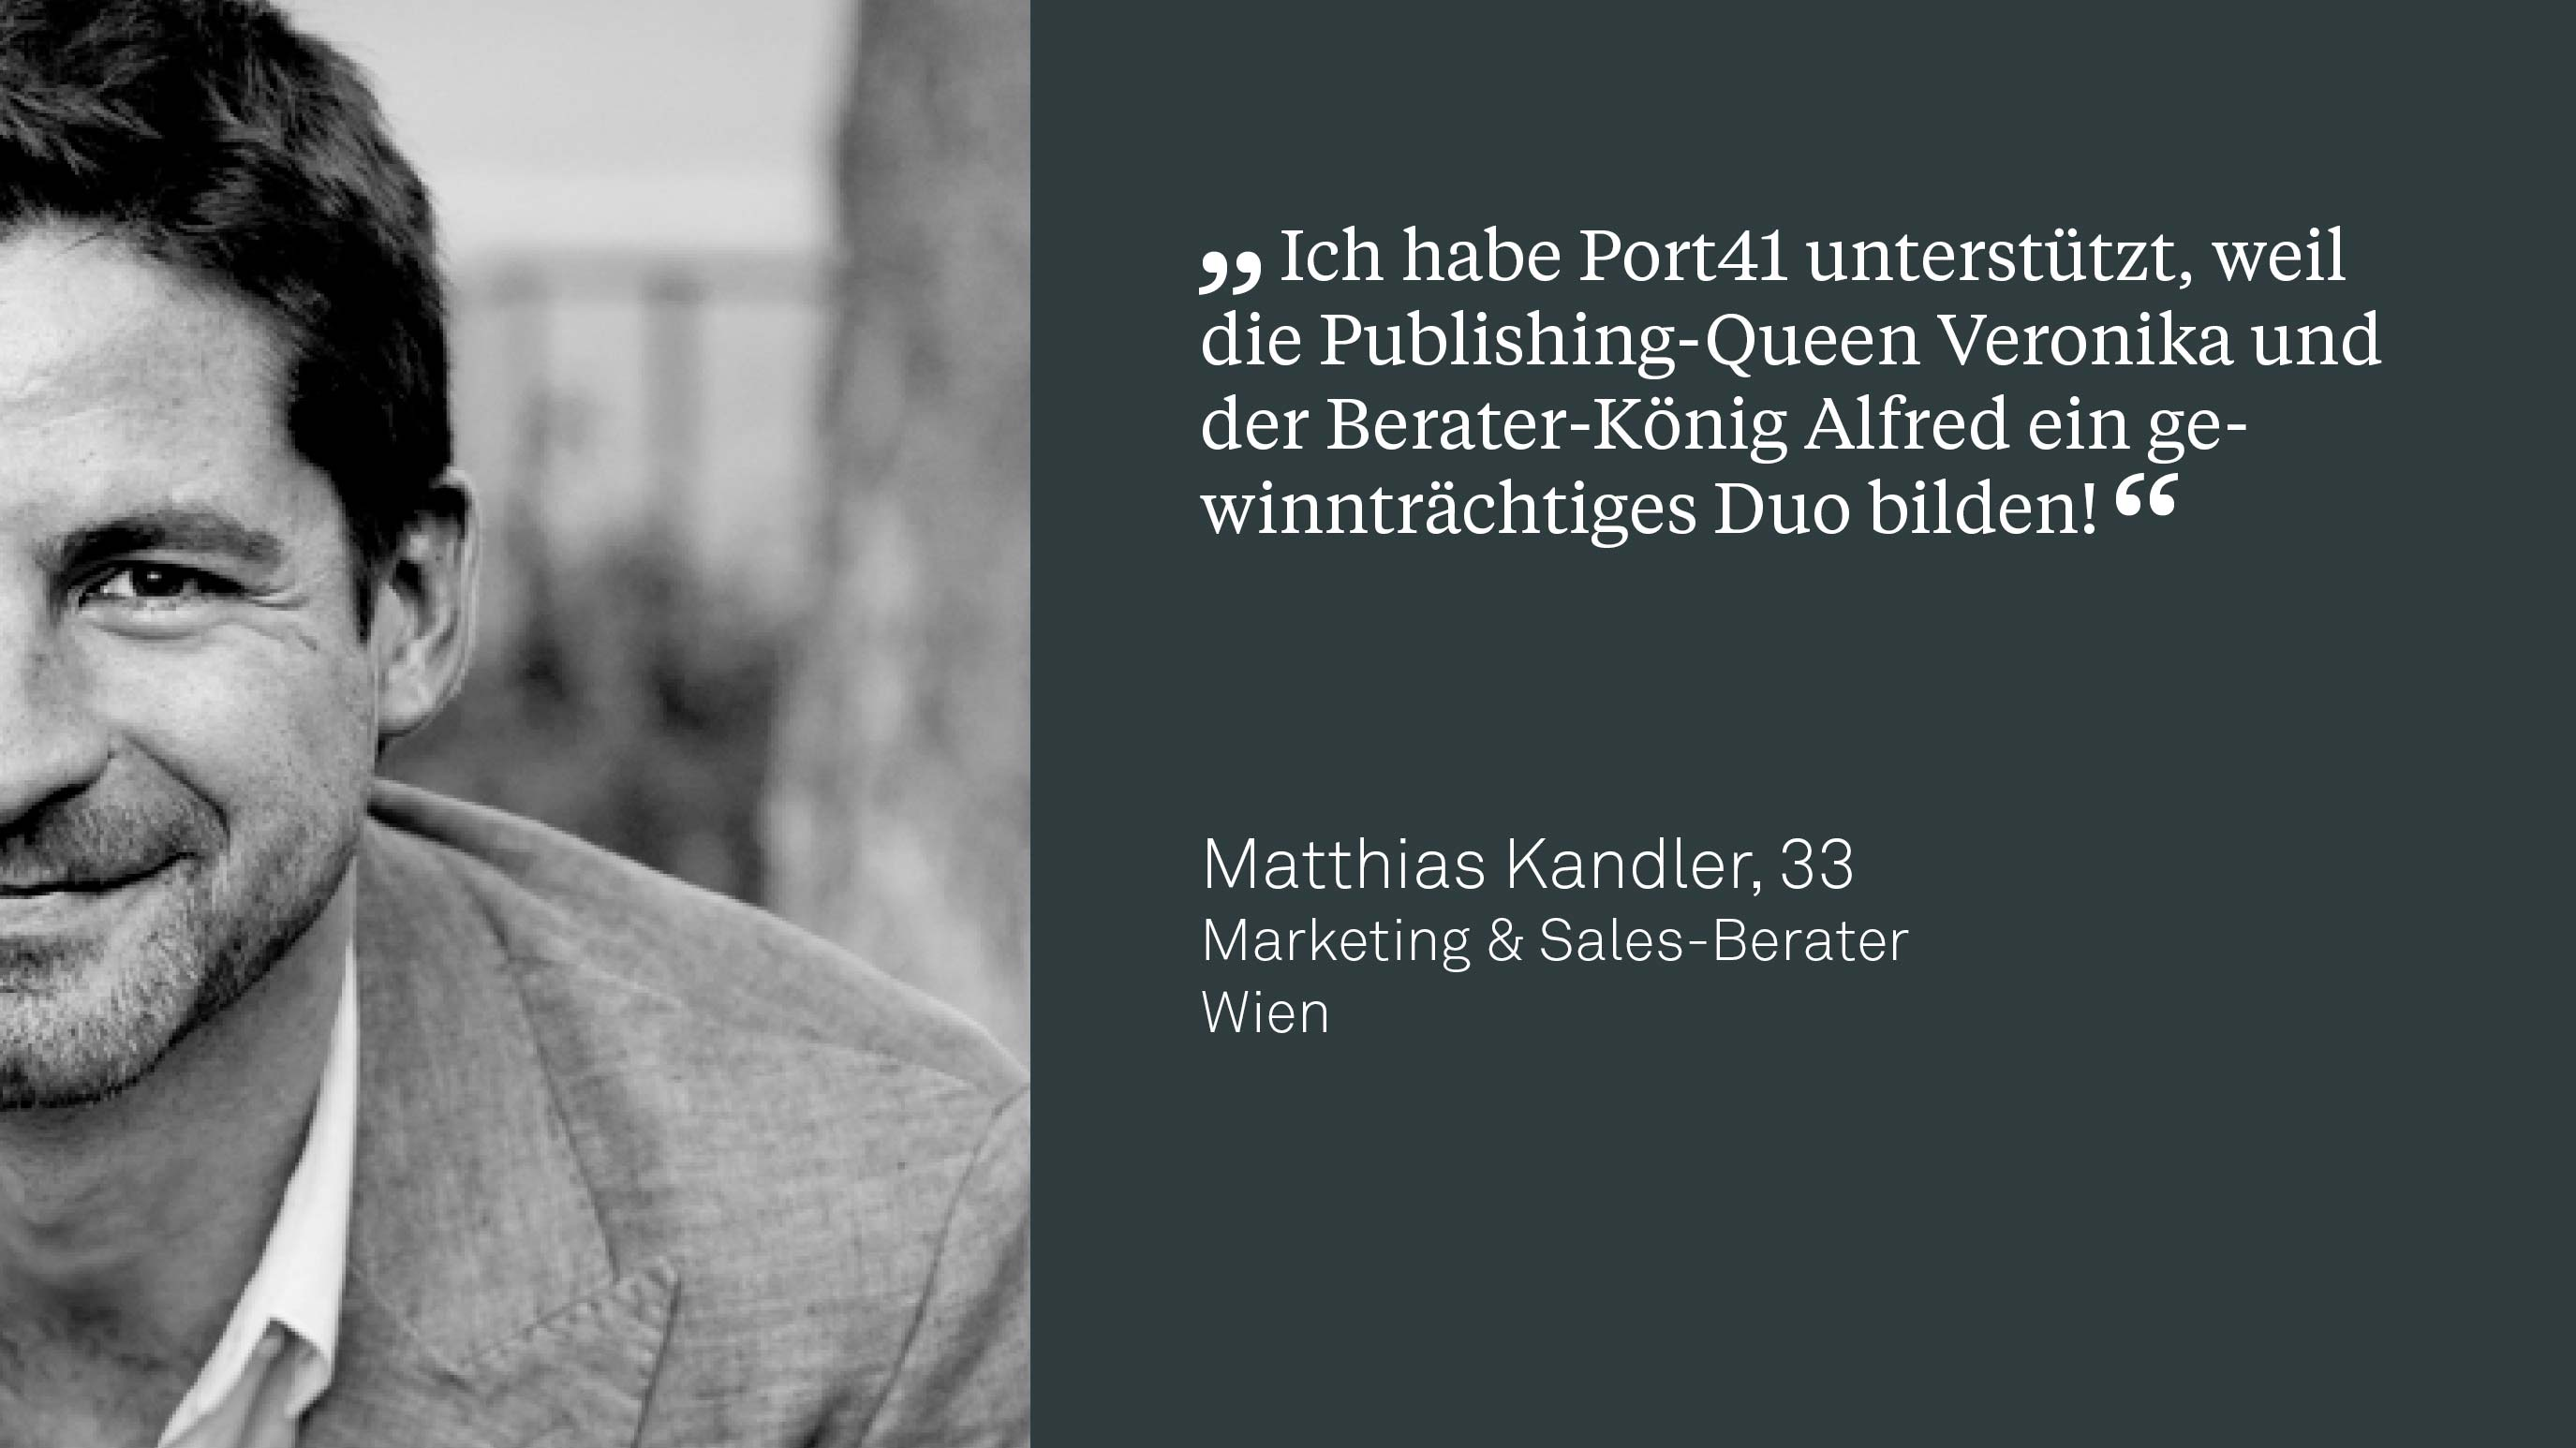 Matthias Kandler, BA, Marketing & Sales-Berater